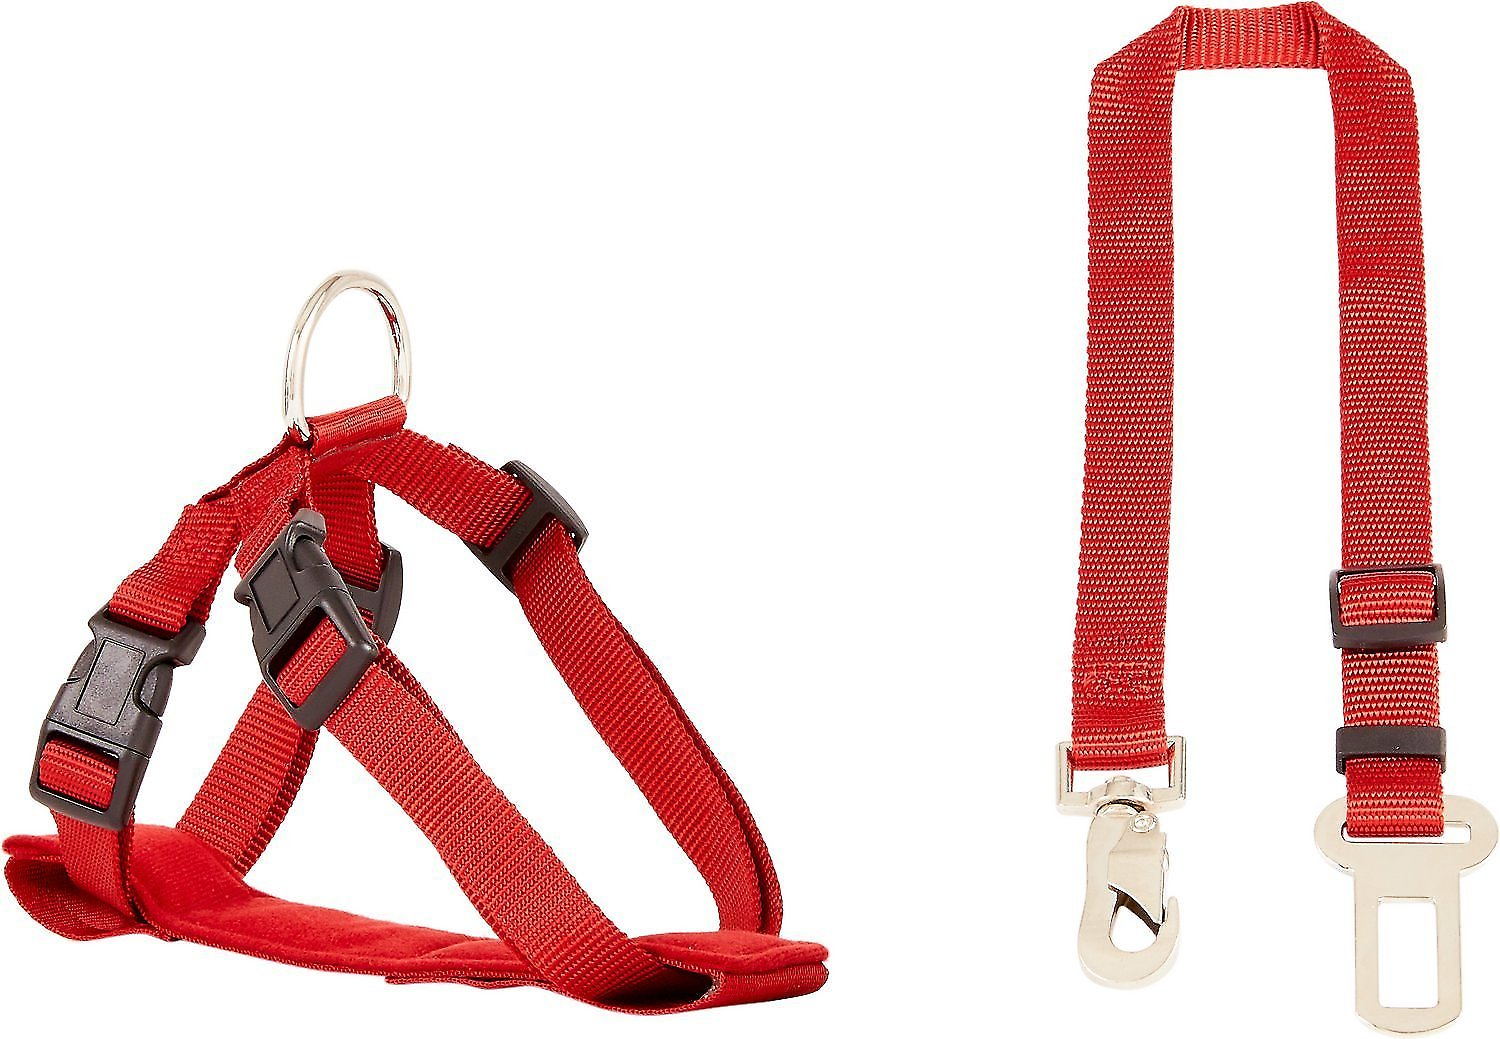 Hdp car dog harness safety seat belt travel gear red small for Travel gear car